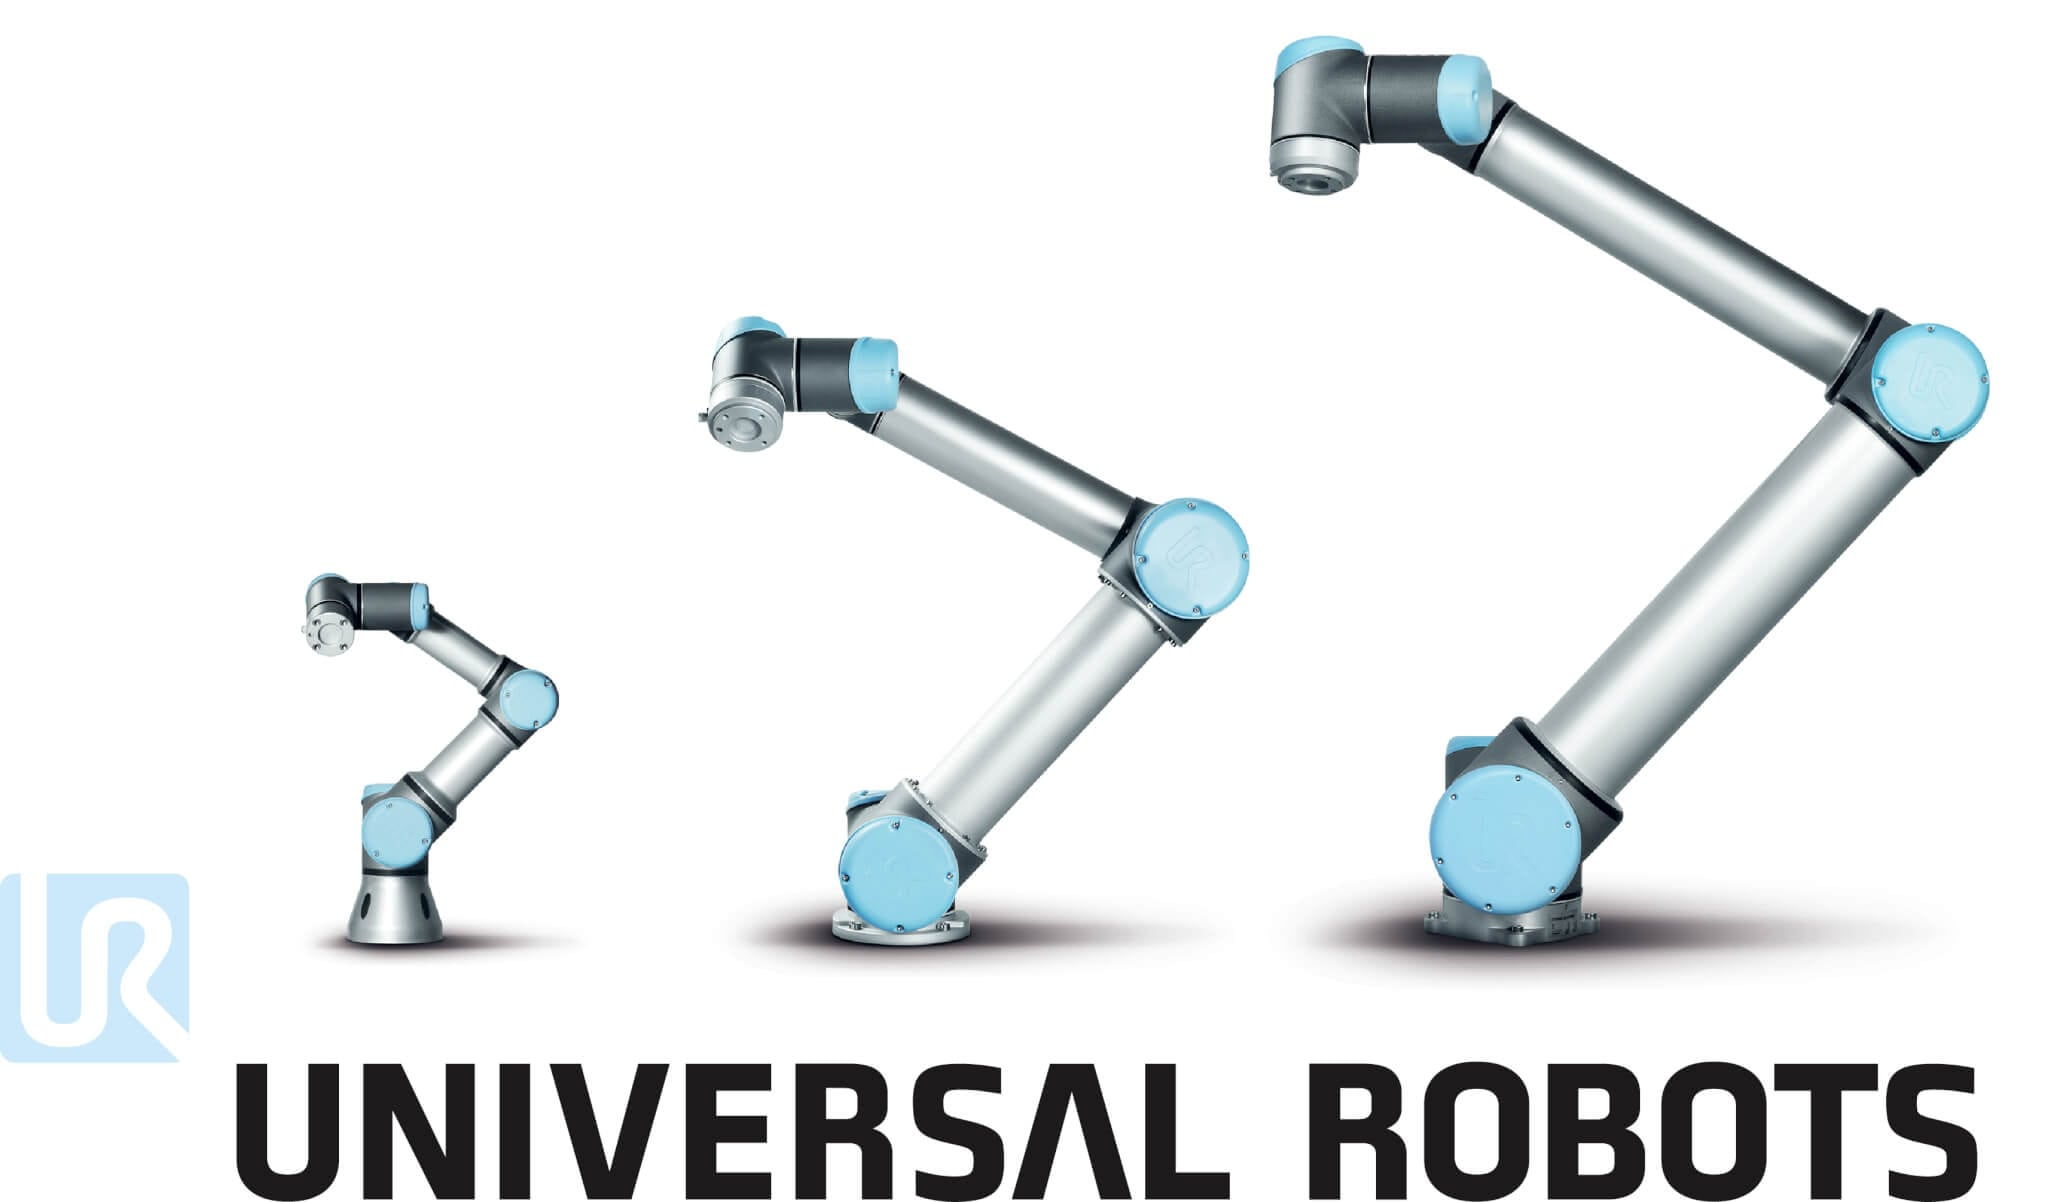 Universal Robots logo and graphic